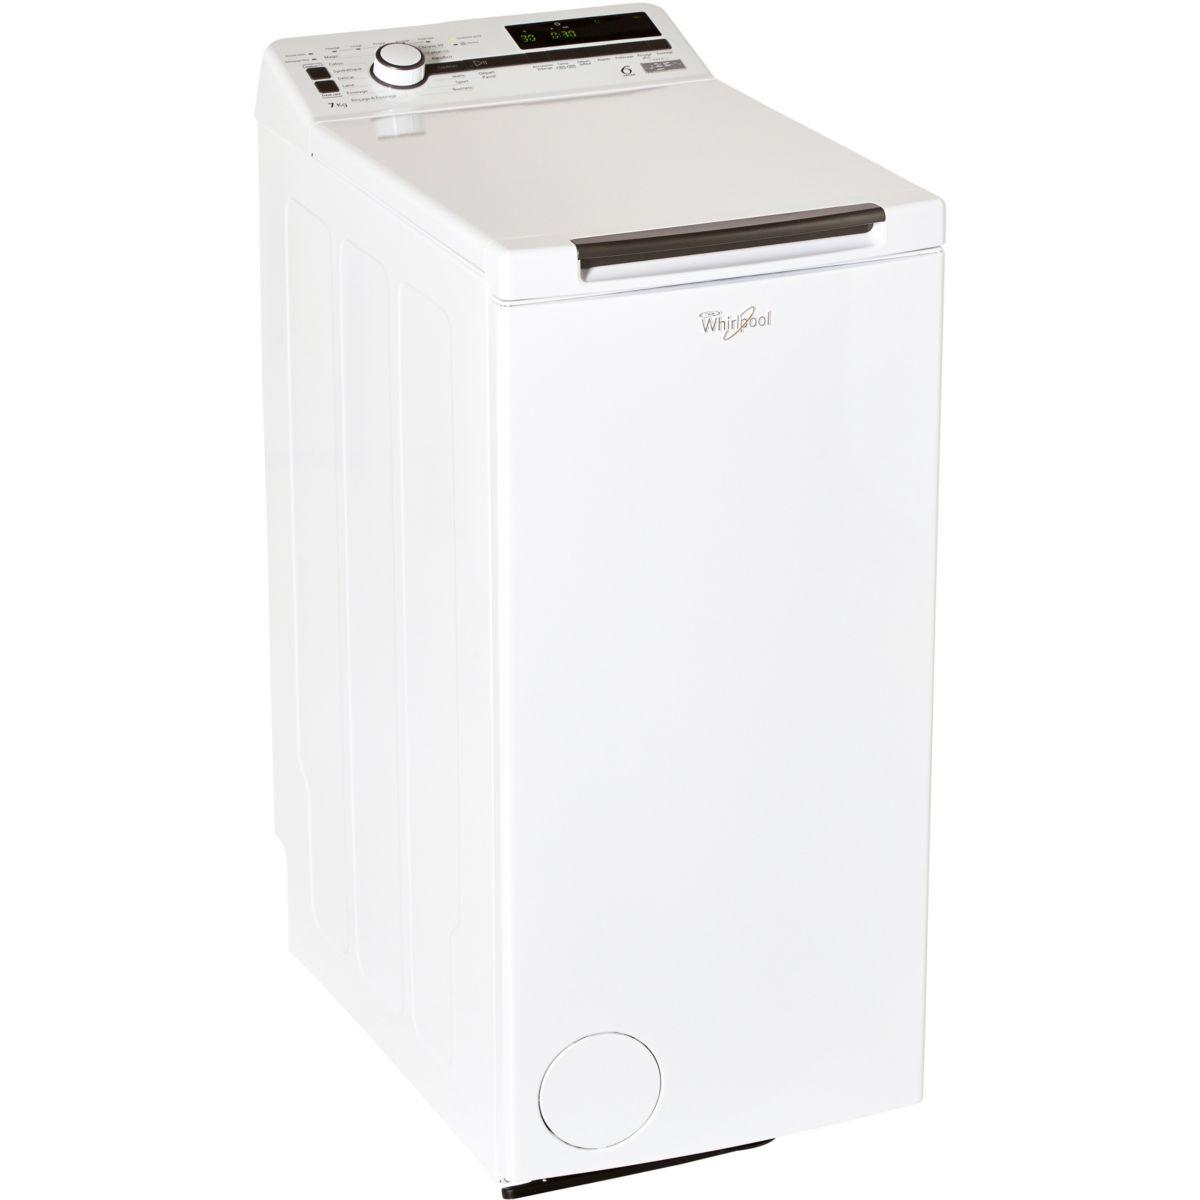 Lave linge top whirlpool tdlr 70230 (photo)